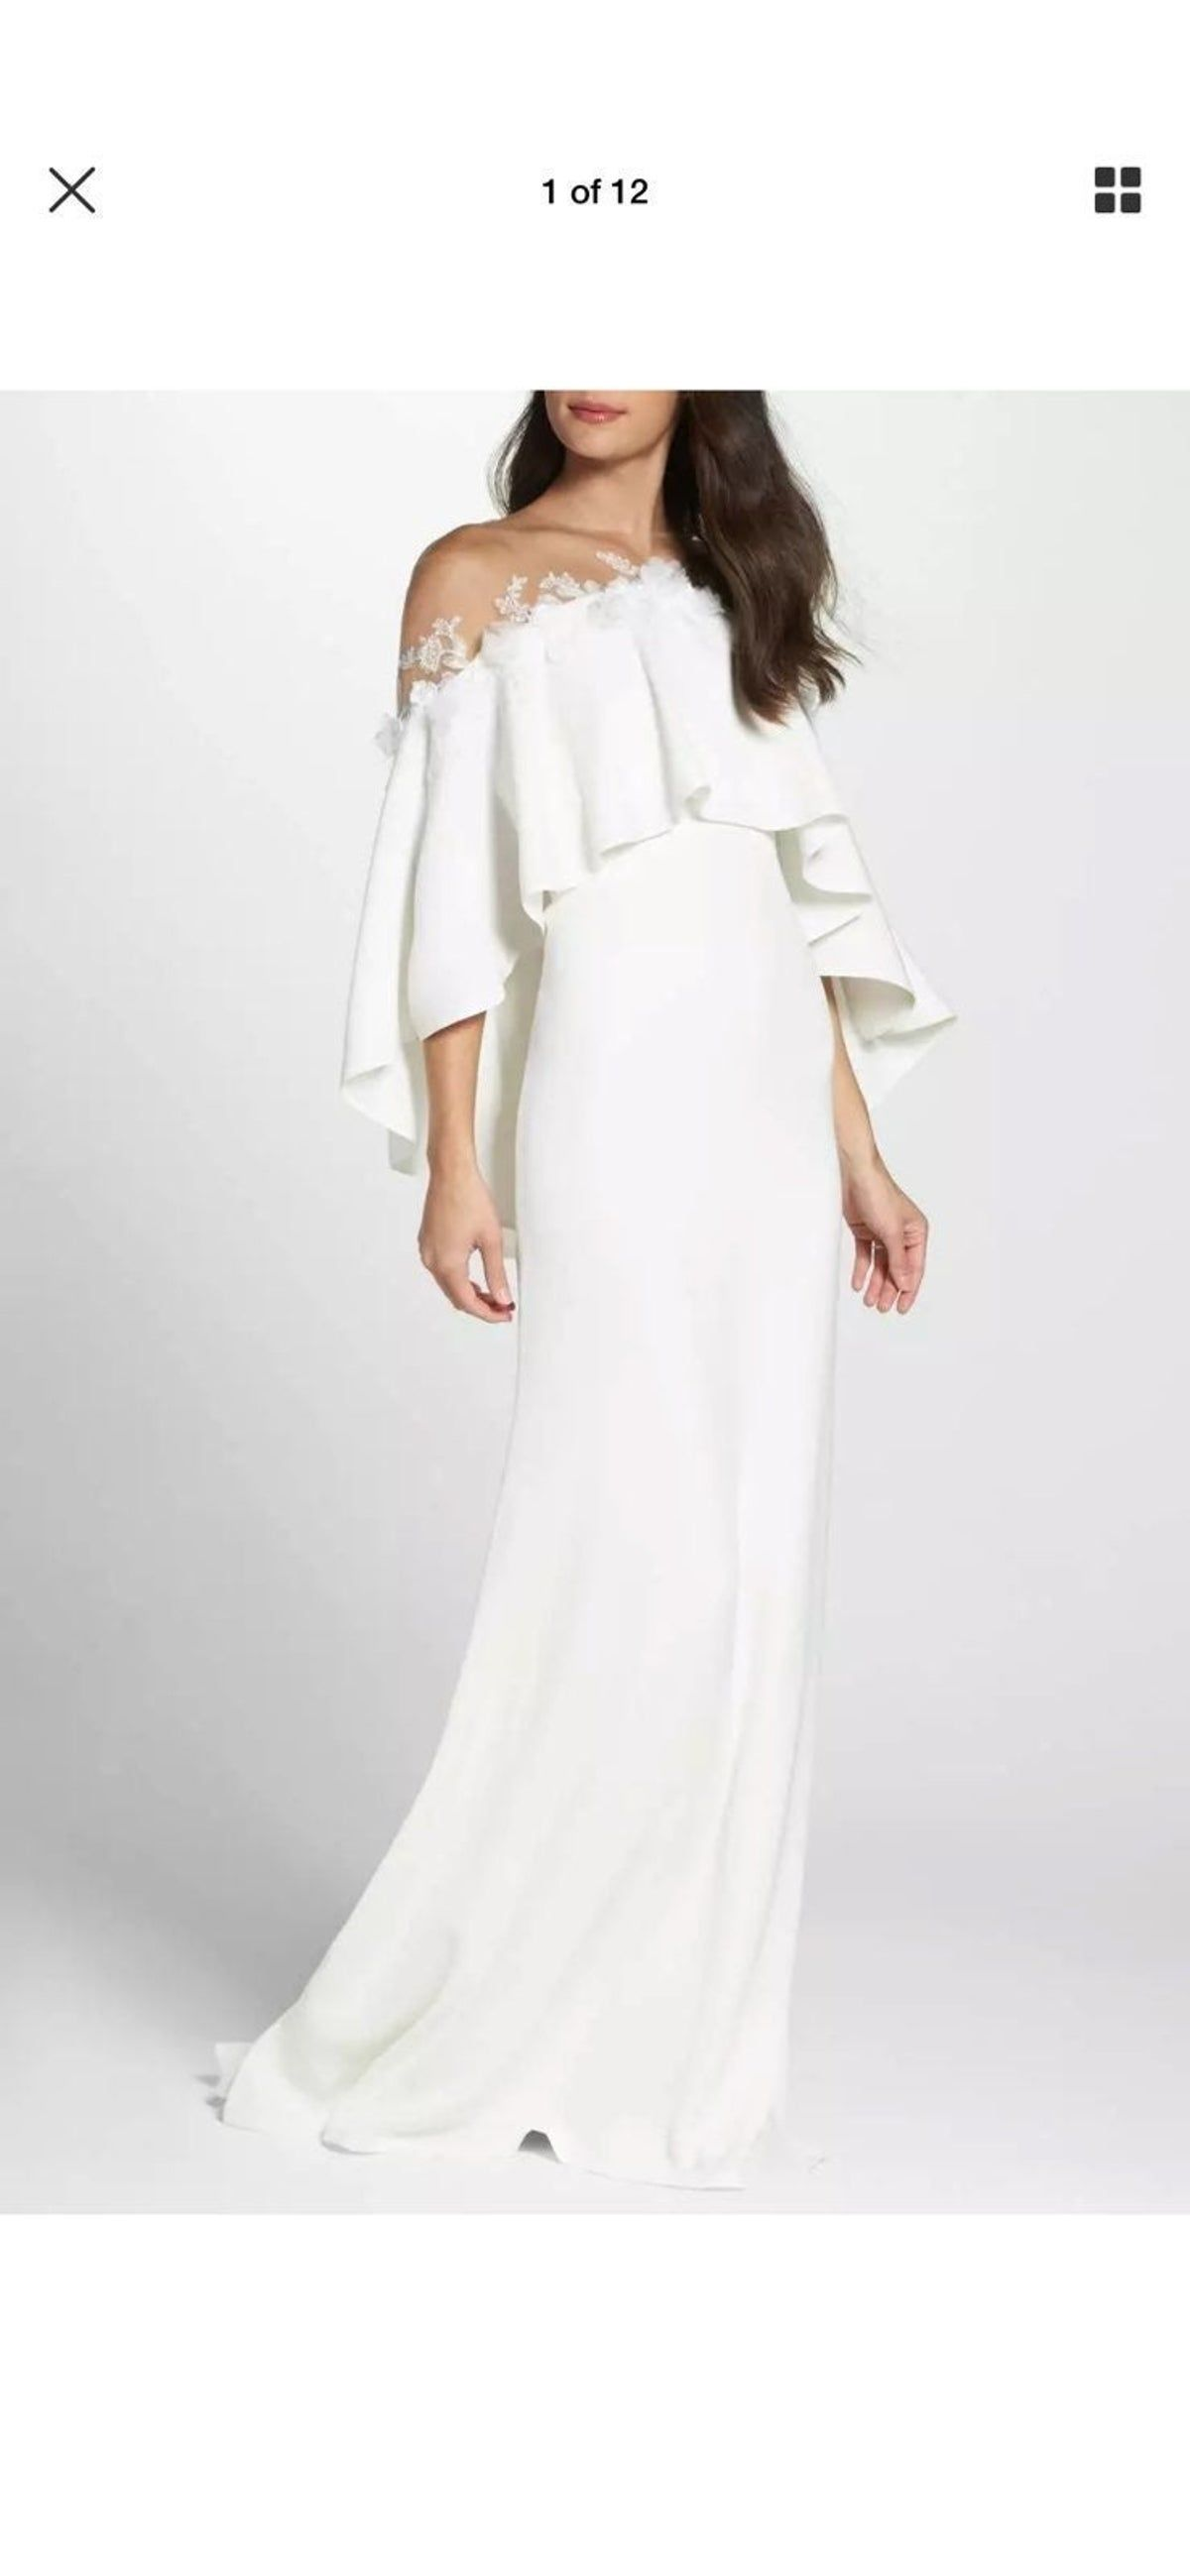 Nwt! Never worn. currently retails on Nordstrom website for $828. Absolute stunner. I bought too many white dresses for my wedding! Ha! Pictures do NOT do this justice!! #revolve #shopbop #netaporter #intermix #nordstrom